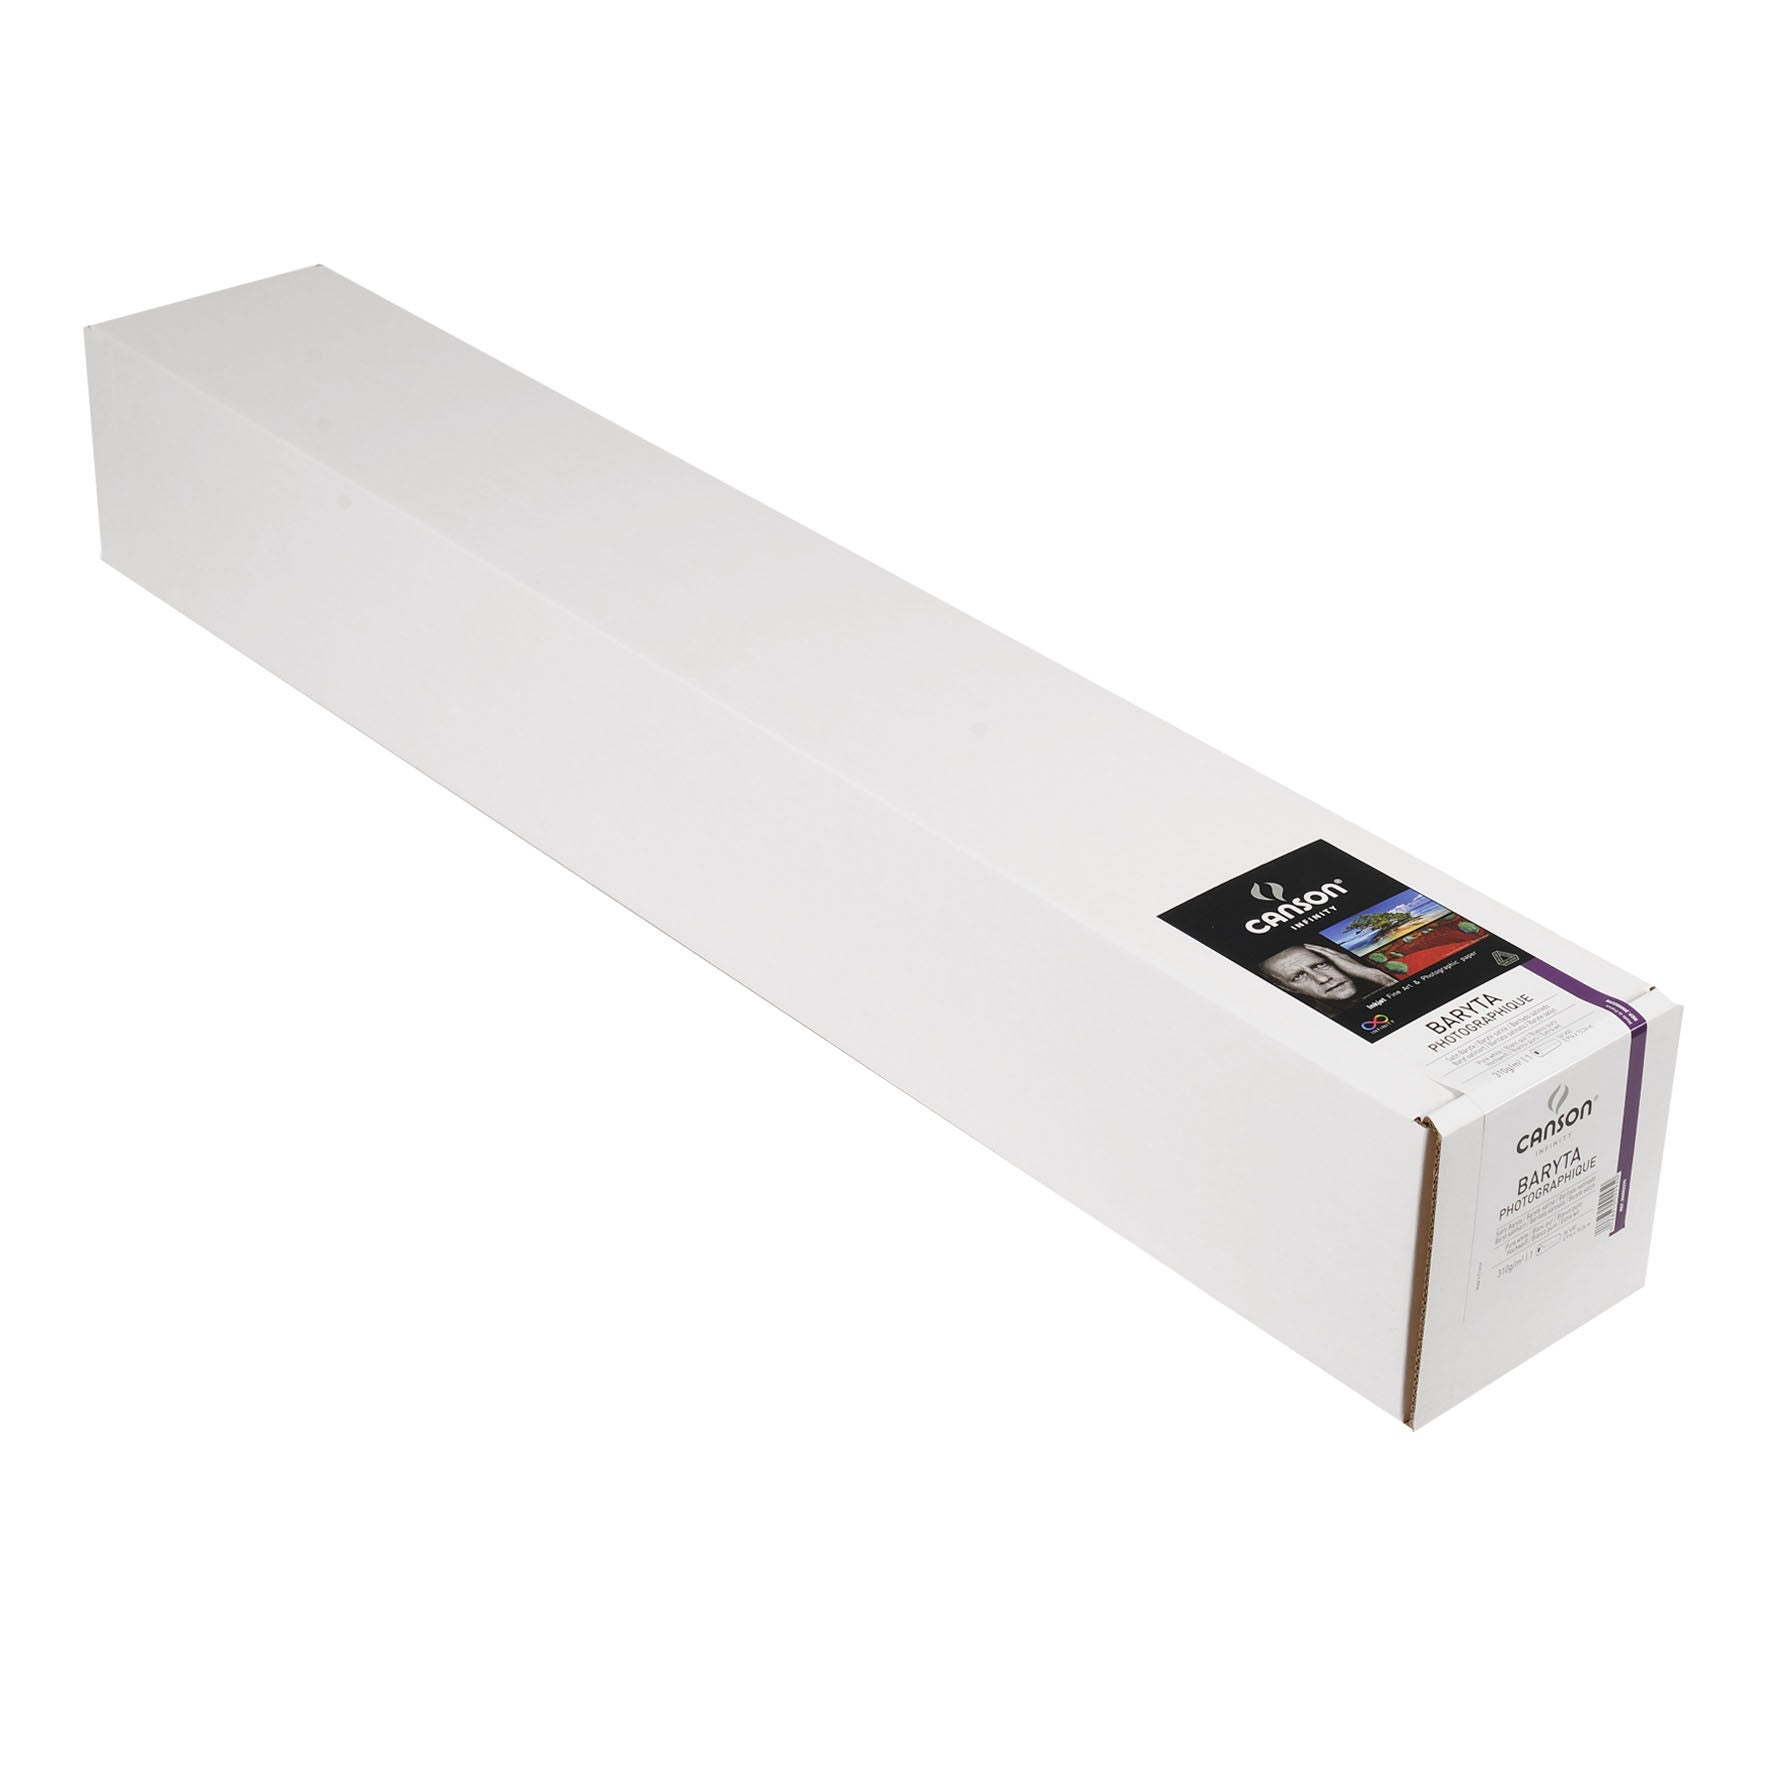 "Canson Infinity Baryta Photographique - 310gsm - 36""x50' roll - Wall Your Photos"